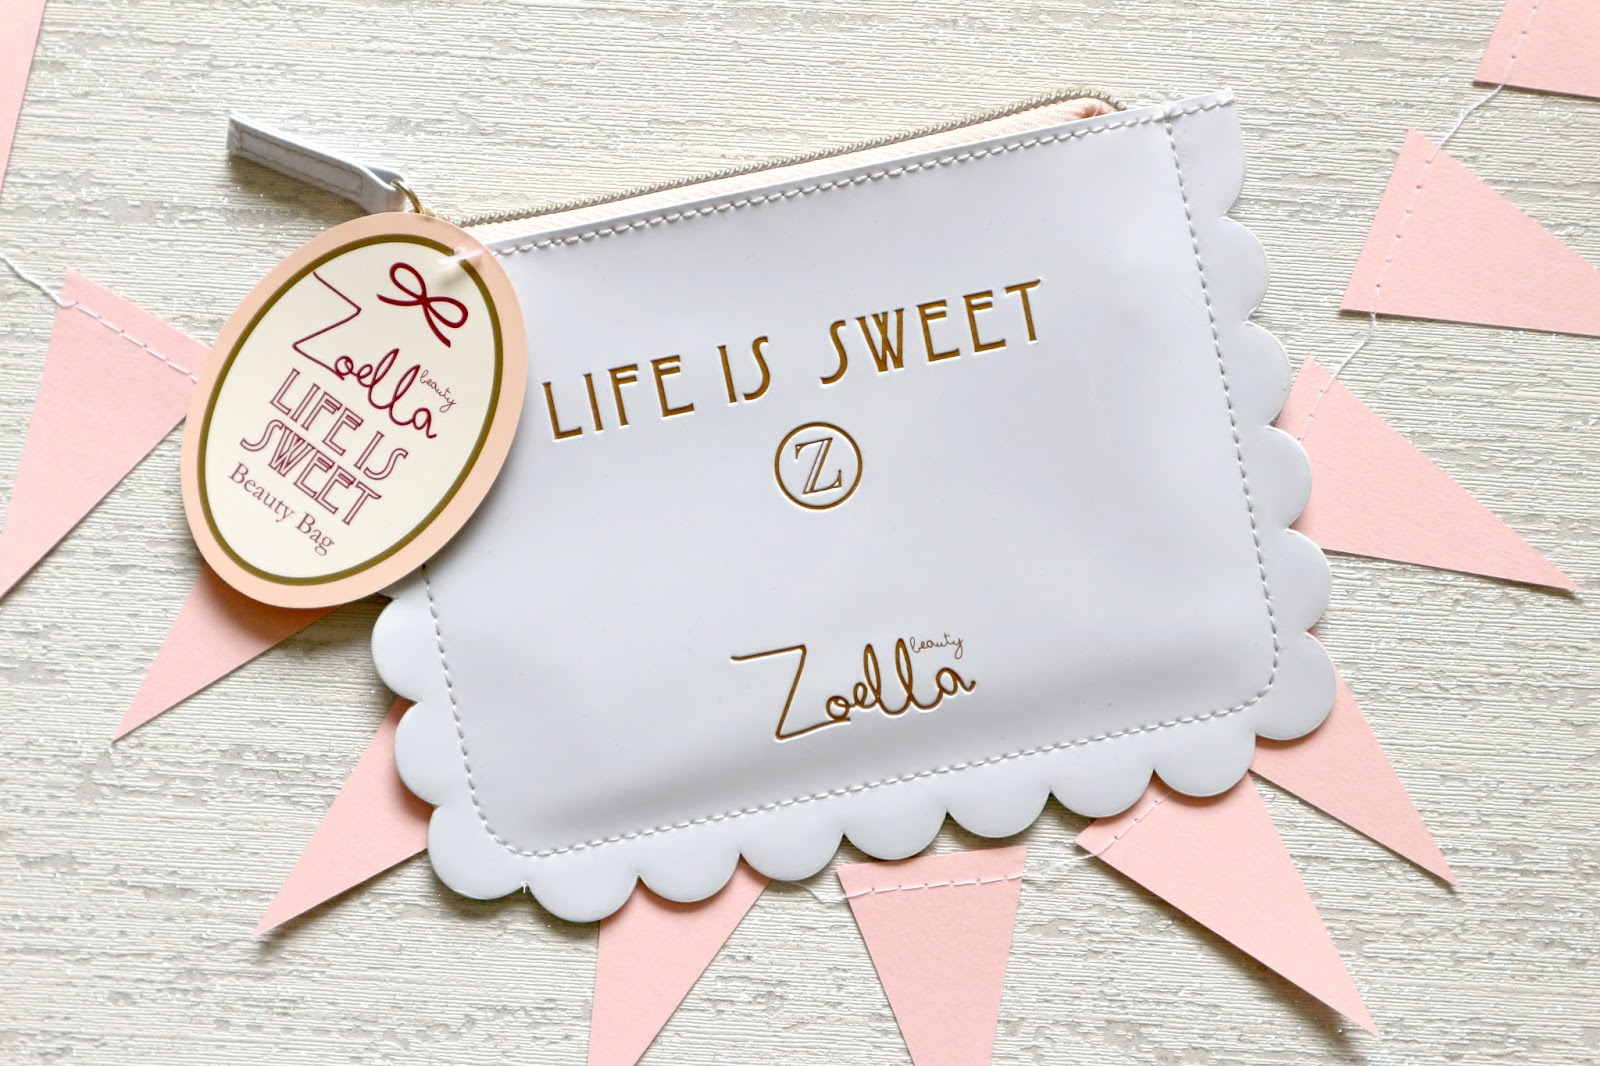 Zoella Life Is Sweet